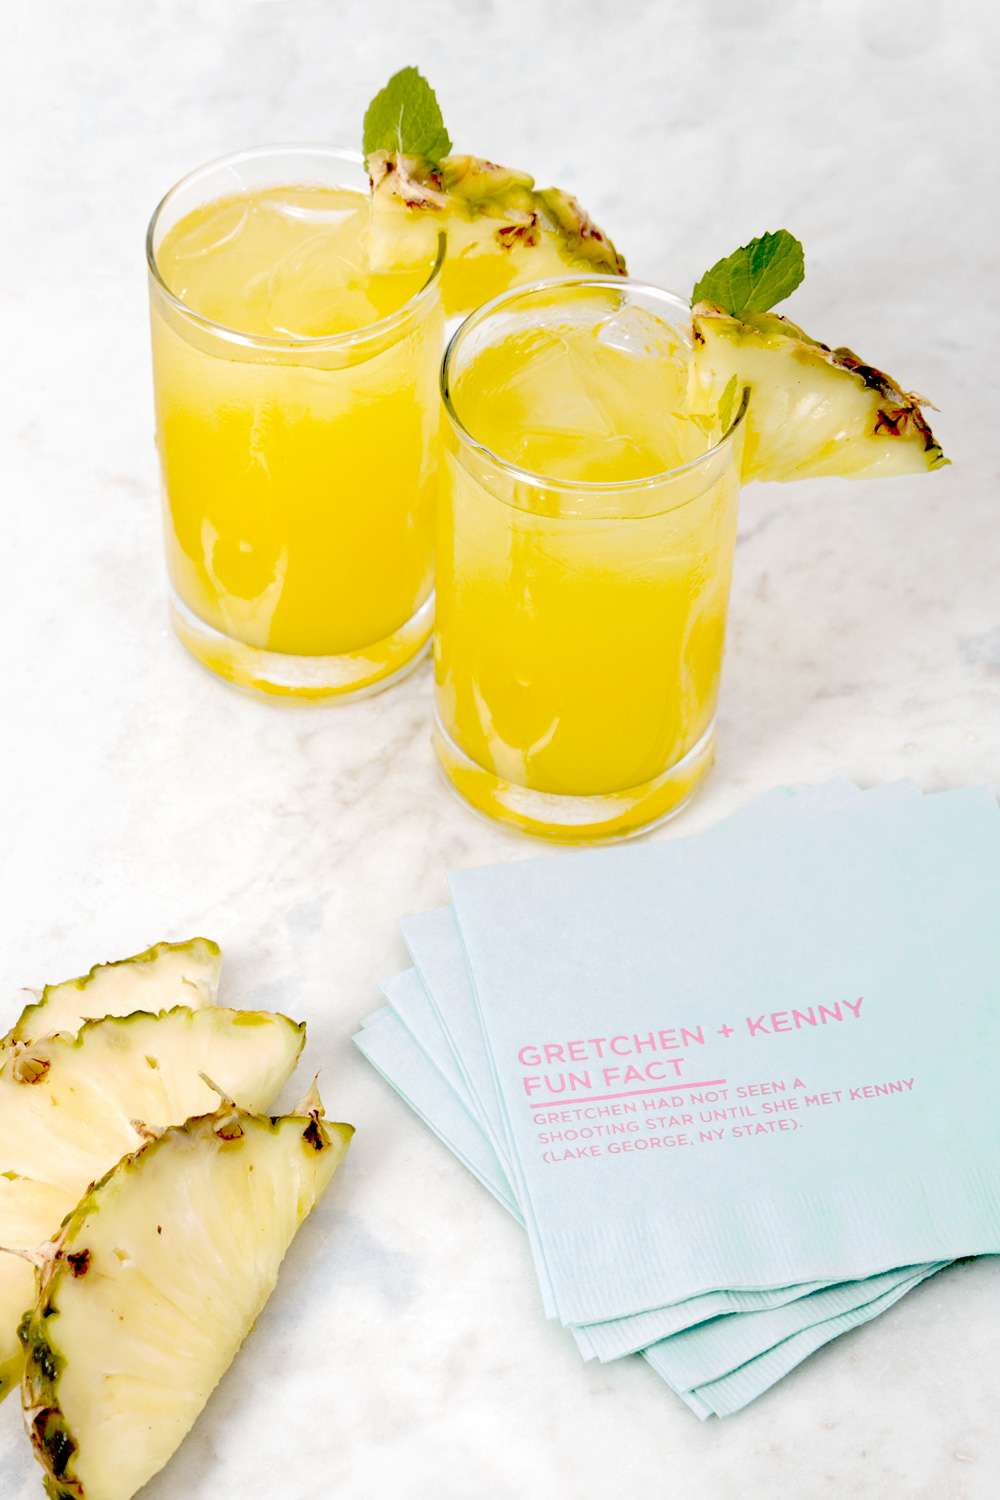 Pineapple Rum Punch cocktail recipe